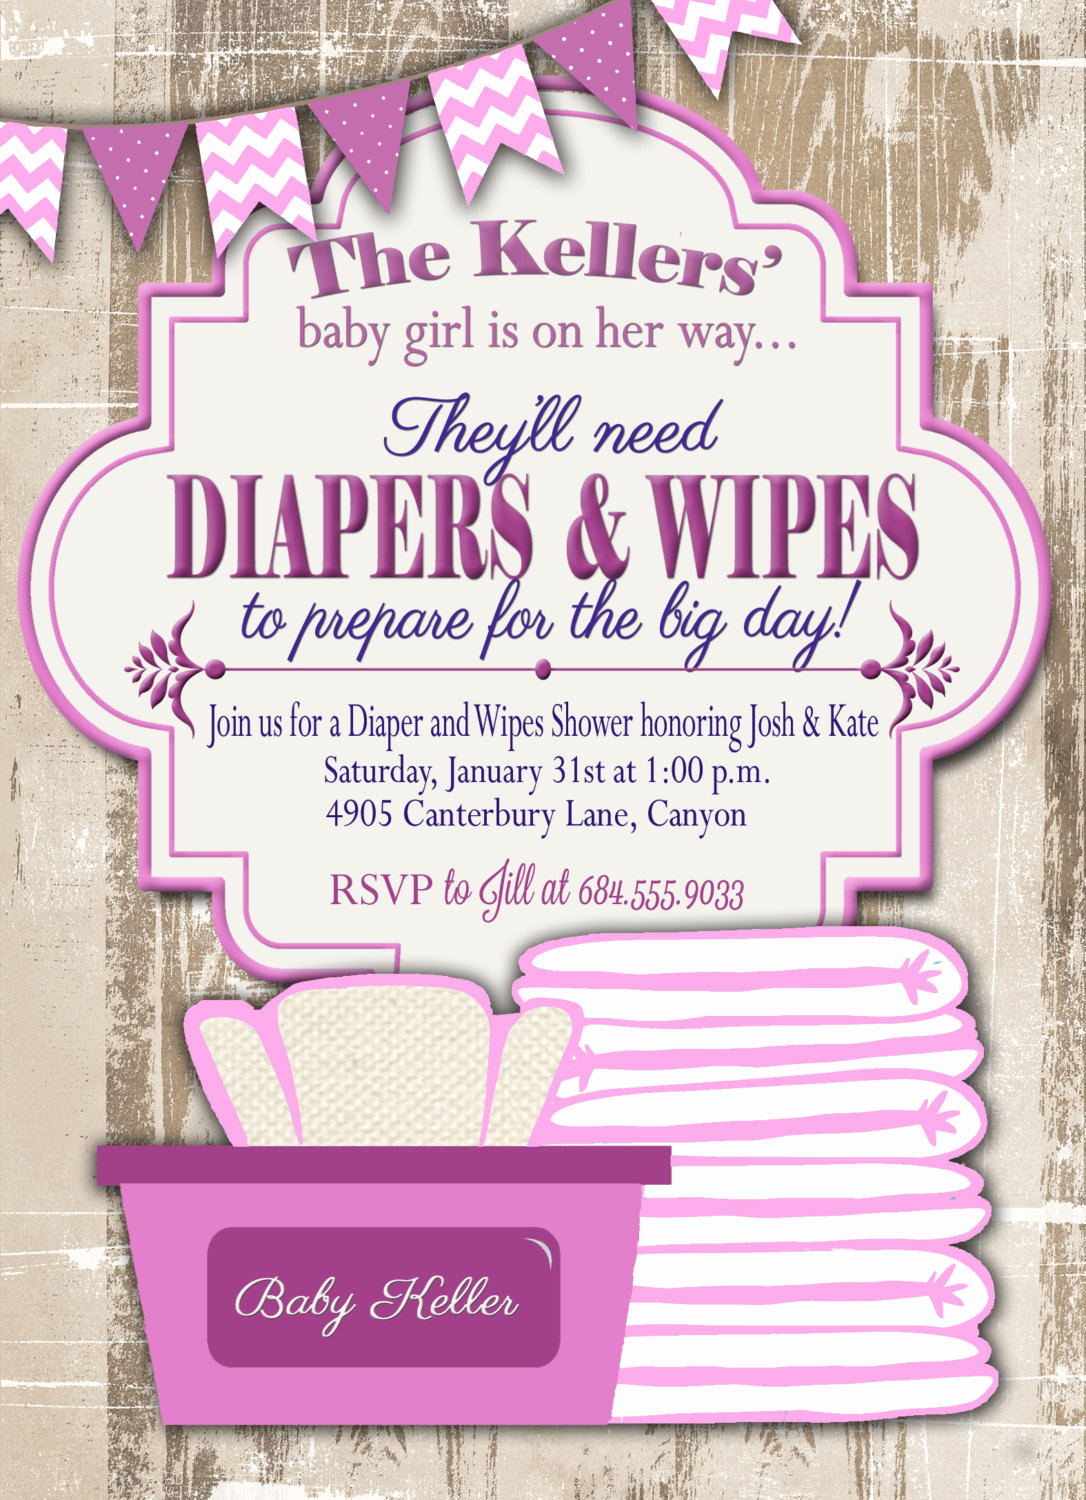 Diaper Template for Shower Invitation Unique Baby Shower Invitation Diaper and Wipes Baby Shower